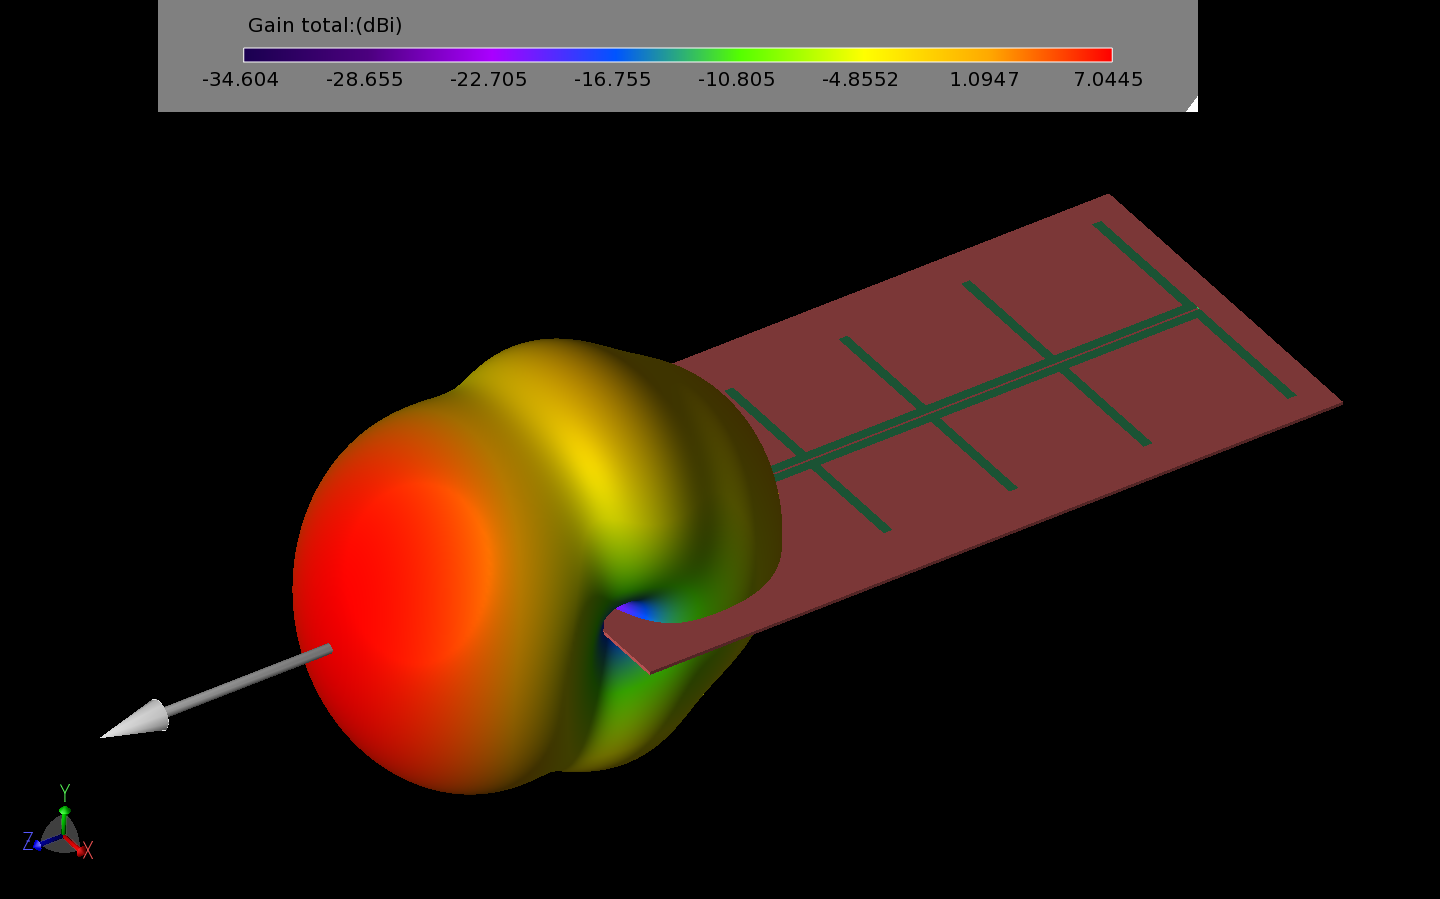 Figure 11: The pattern of the LPDA antenna has strong forward gain and low cross polarization.